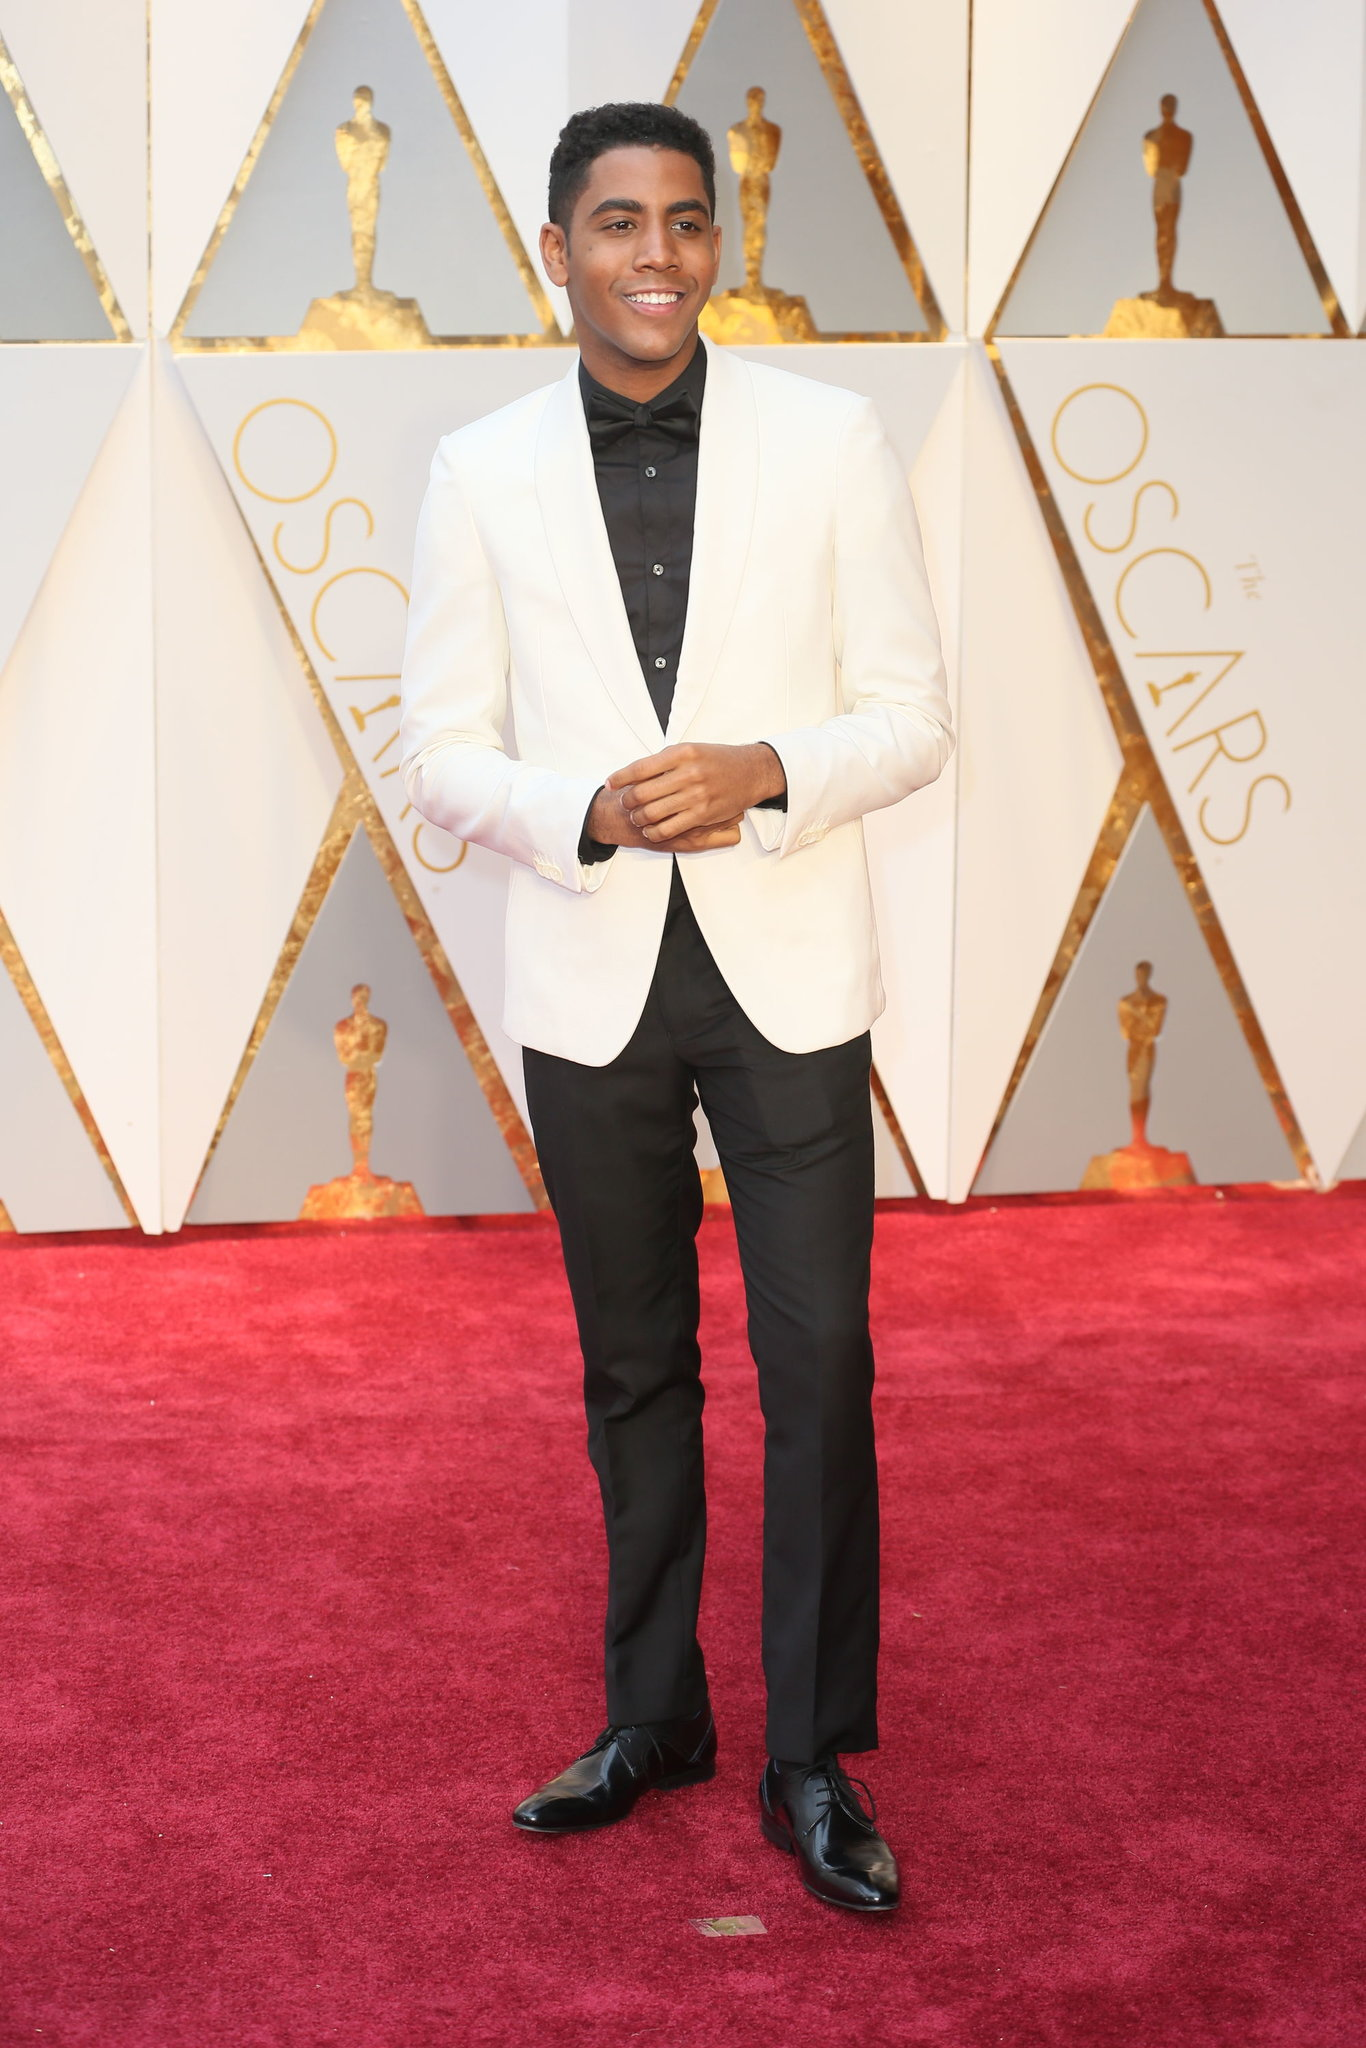 Jharrel-Jerome-in-white-dinner-jacket -withou-pocket-square-and-black-shirt-with-pre-tied-bow-tie.jpg c9fd28da24a